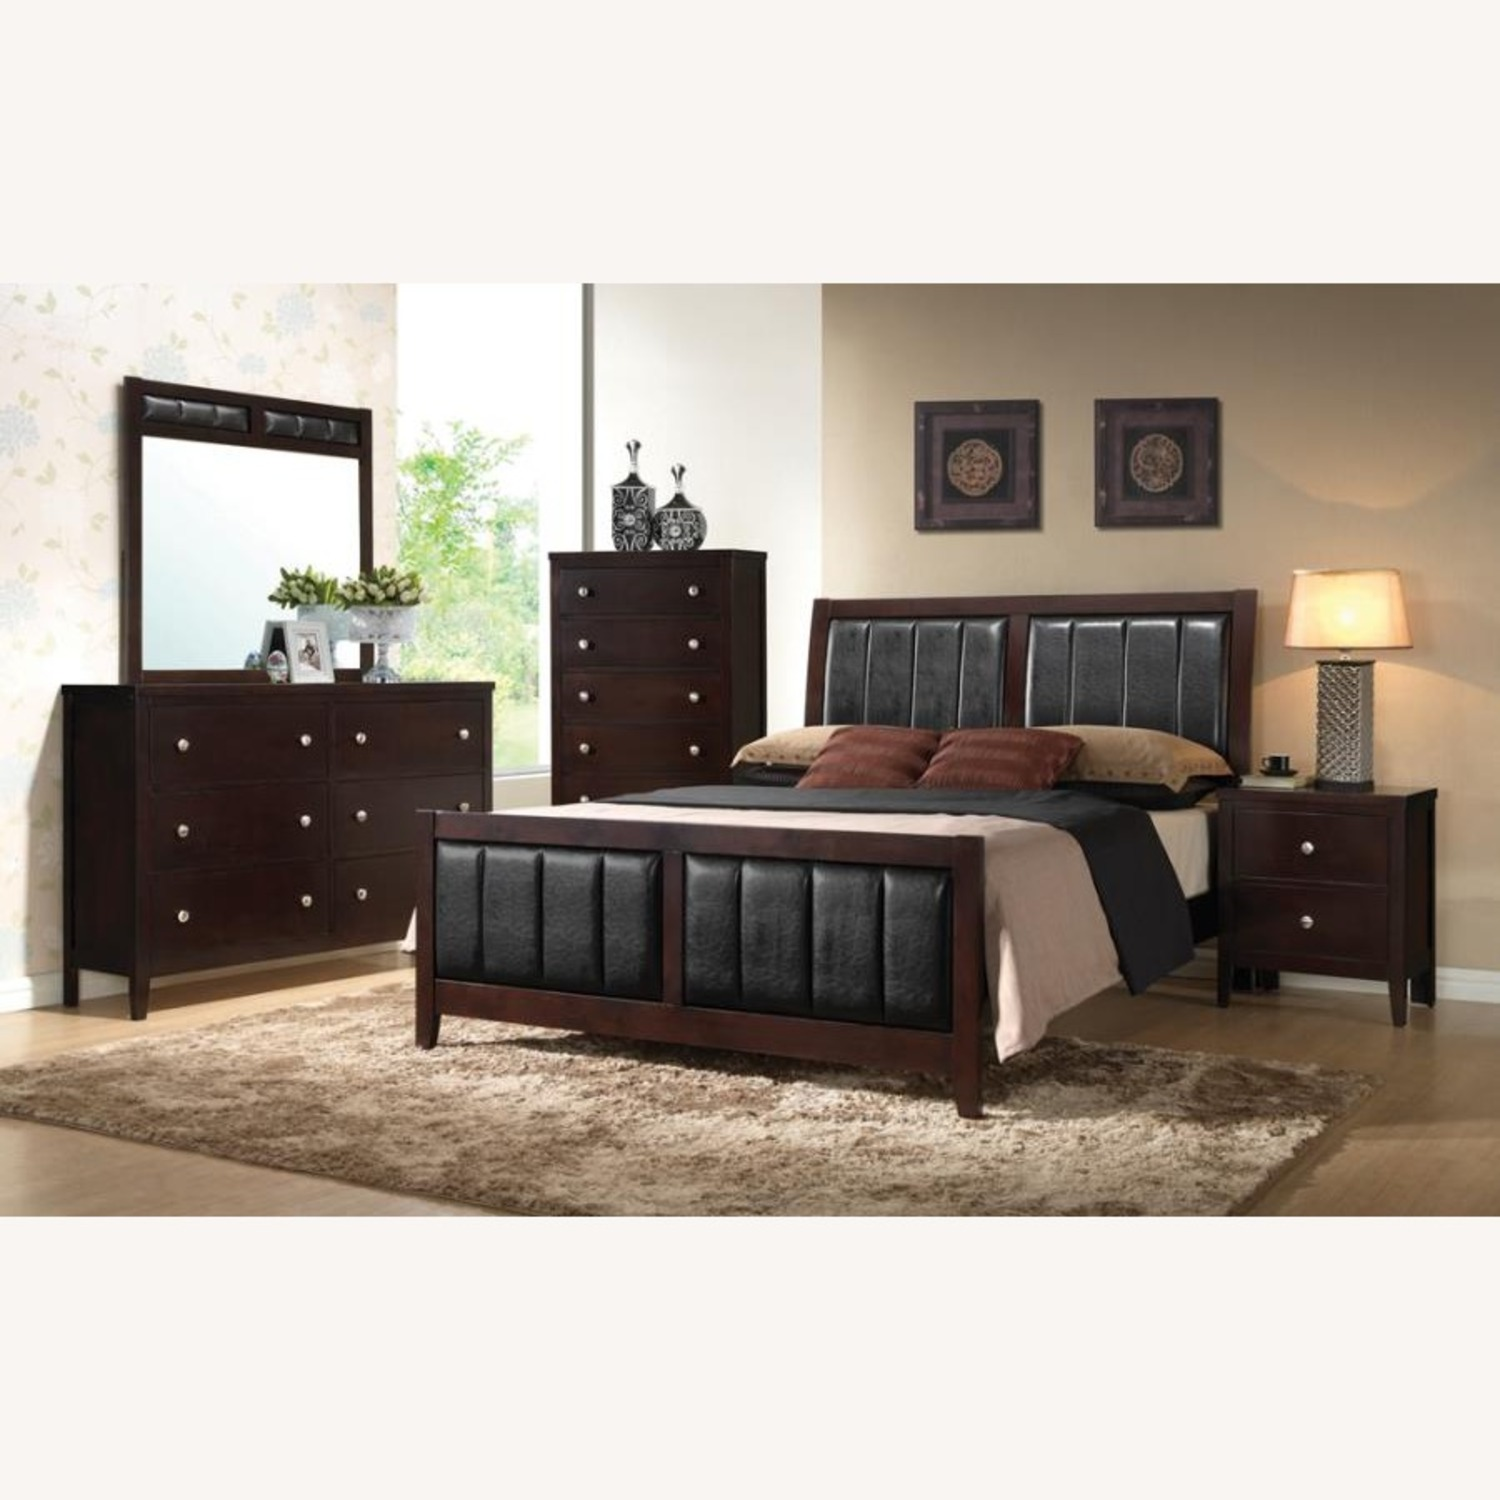 King Bed In Cappuccino Finish W/ Black Fabric - image-1